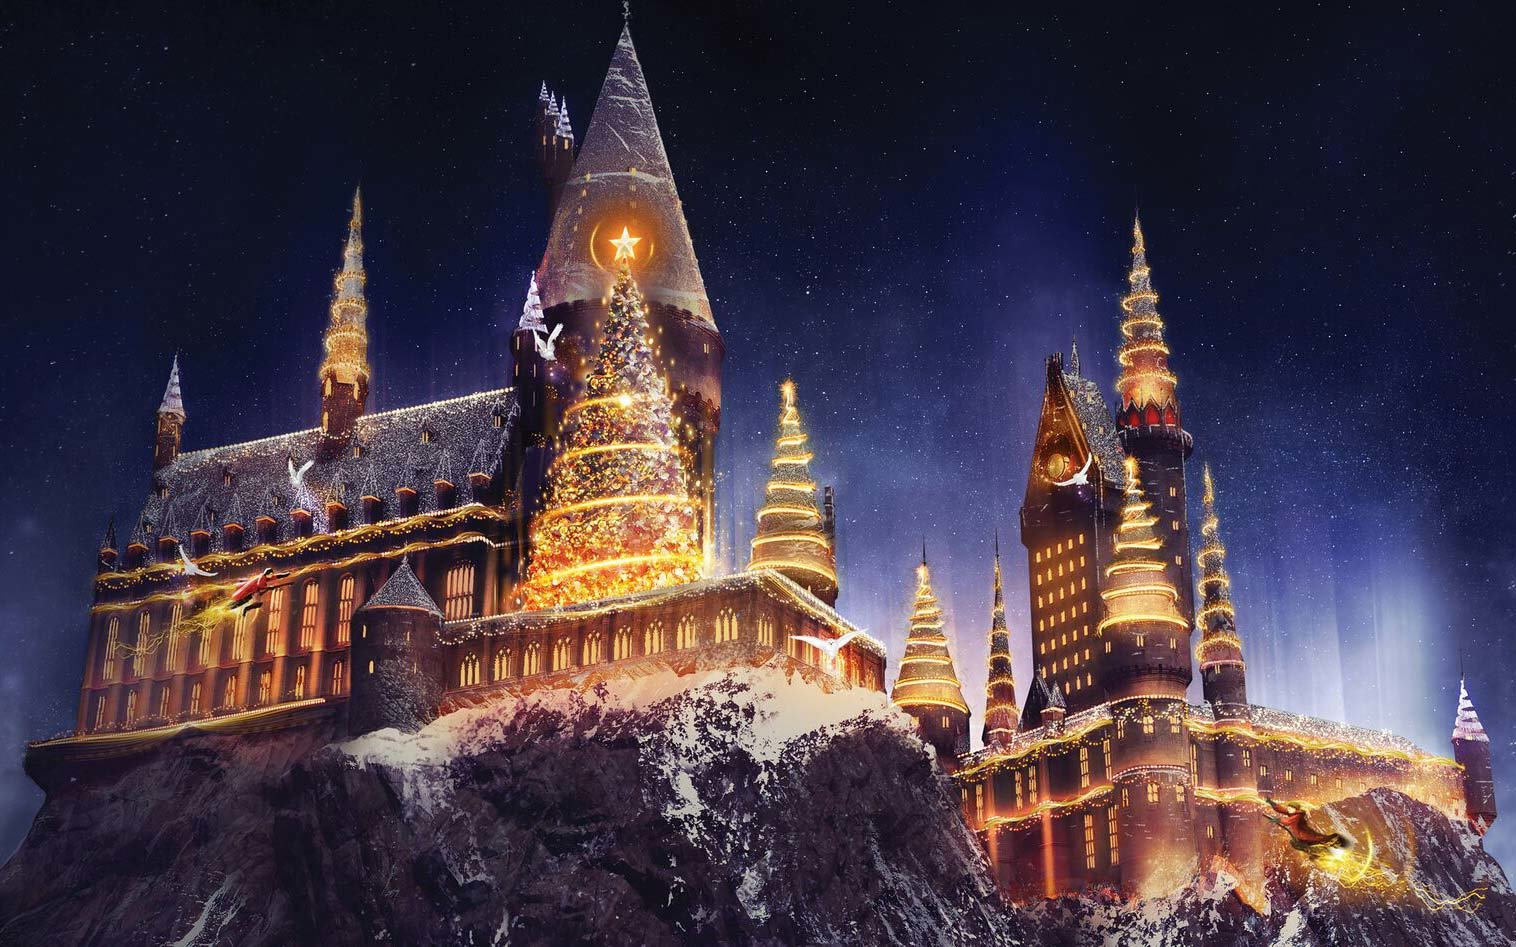 Hogwarts at Christmas